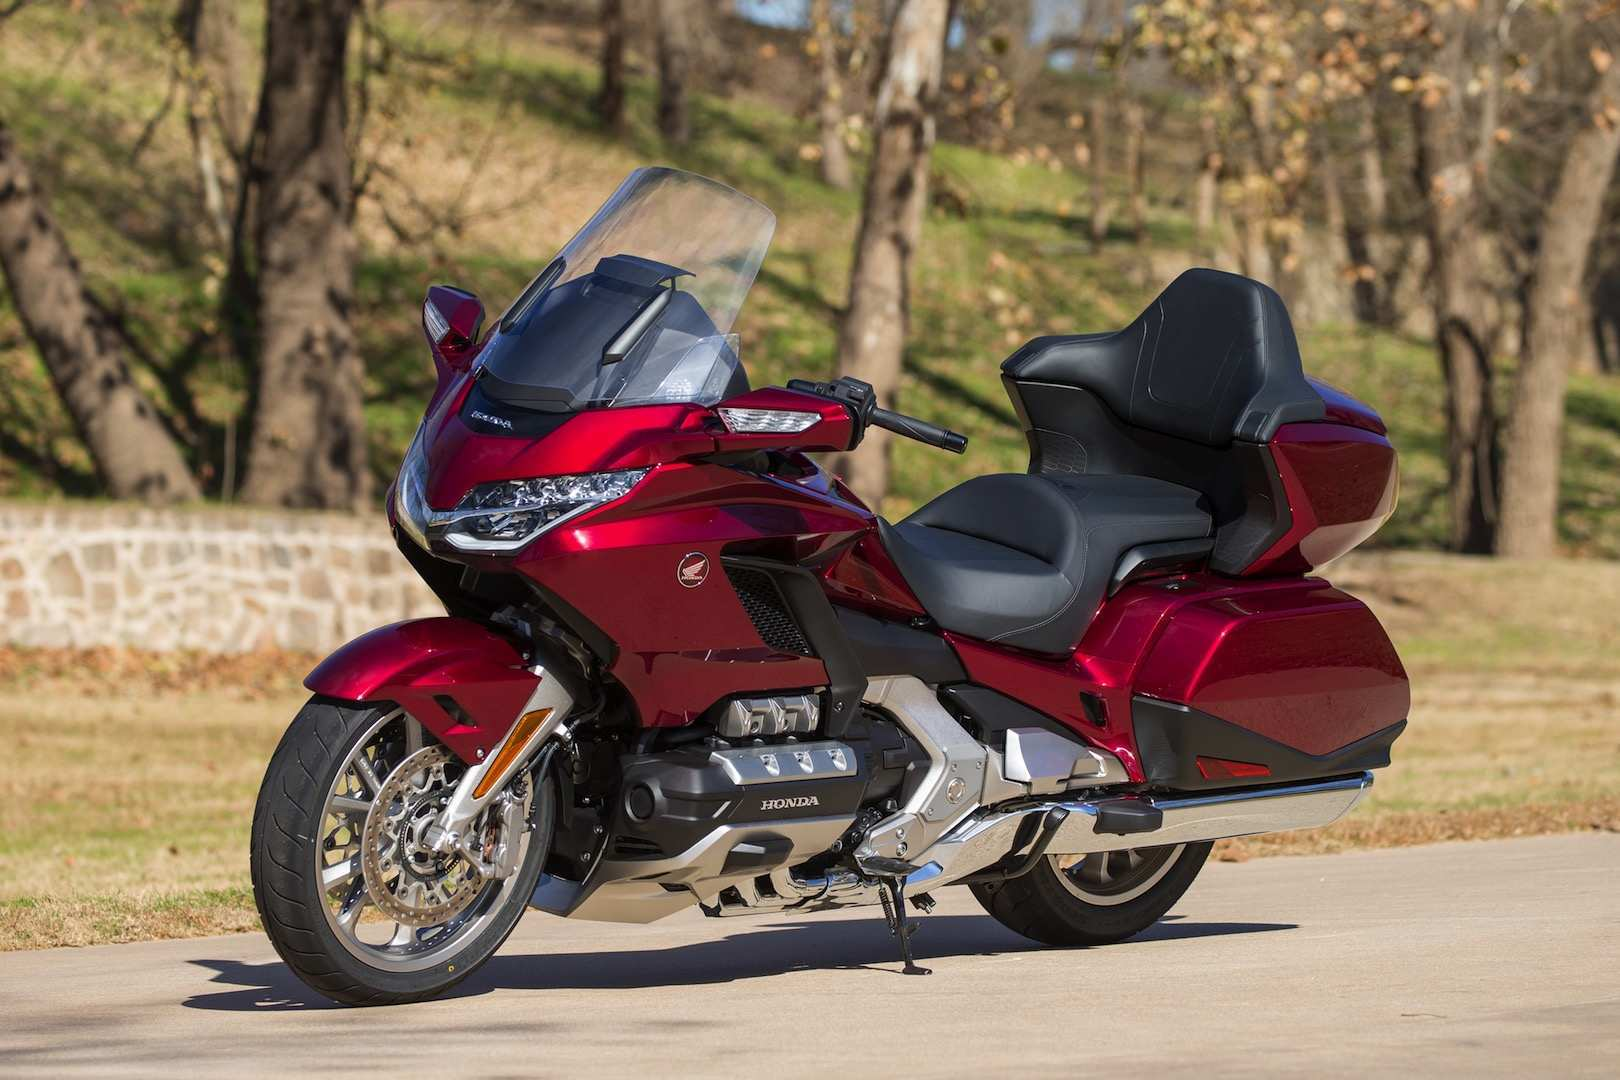 18 New 2020 Honda Gold Wing Price And Release Date